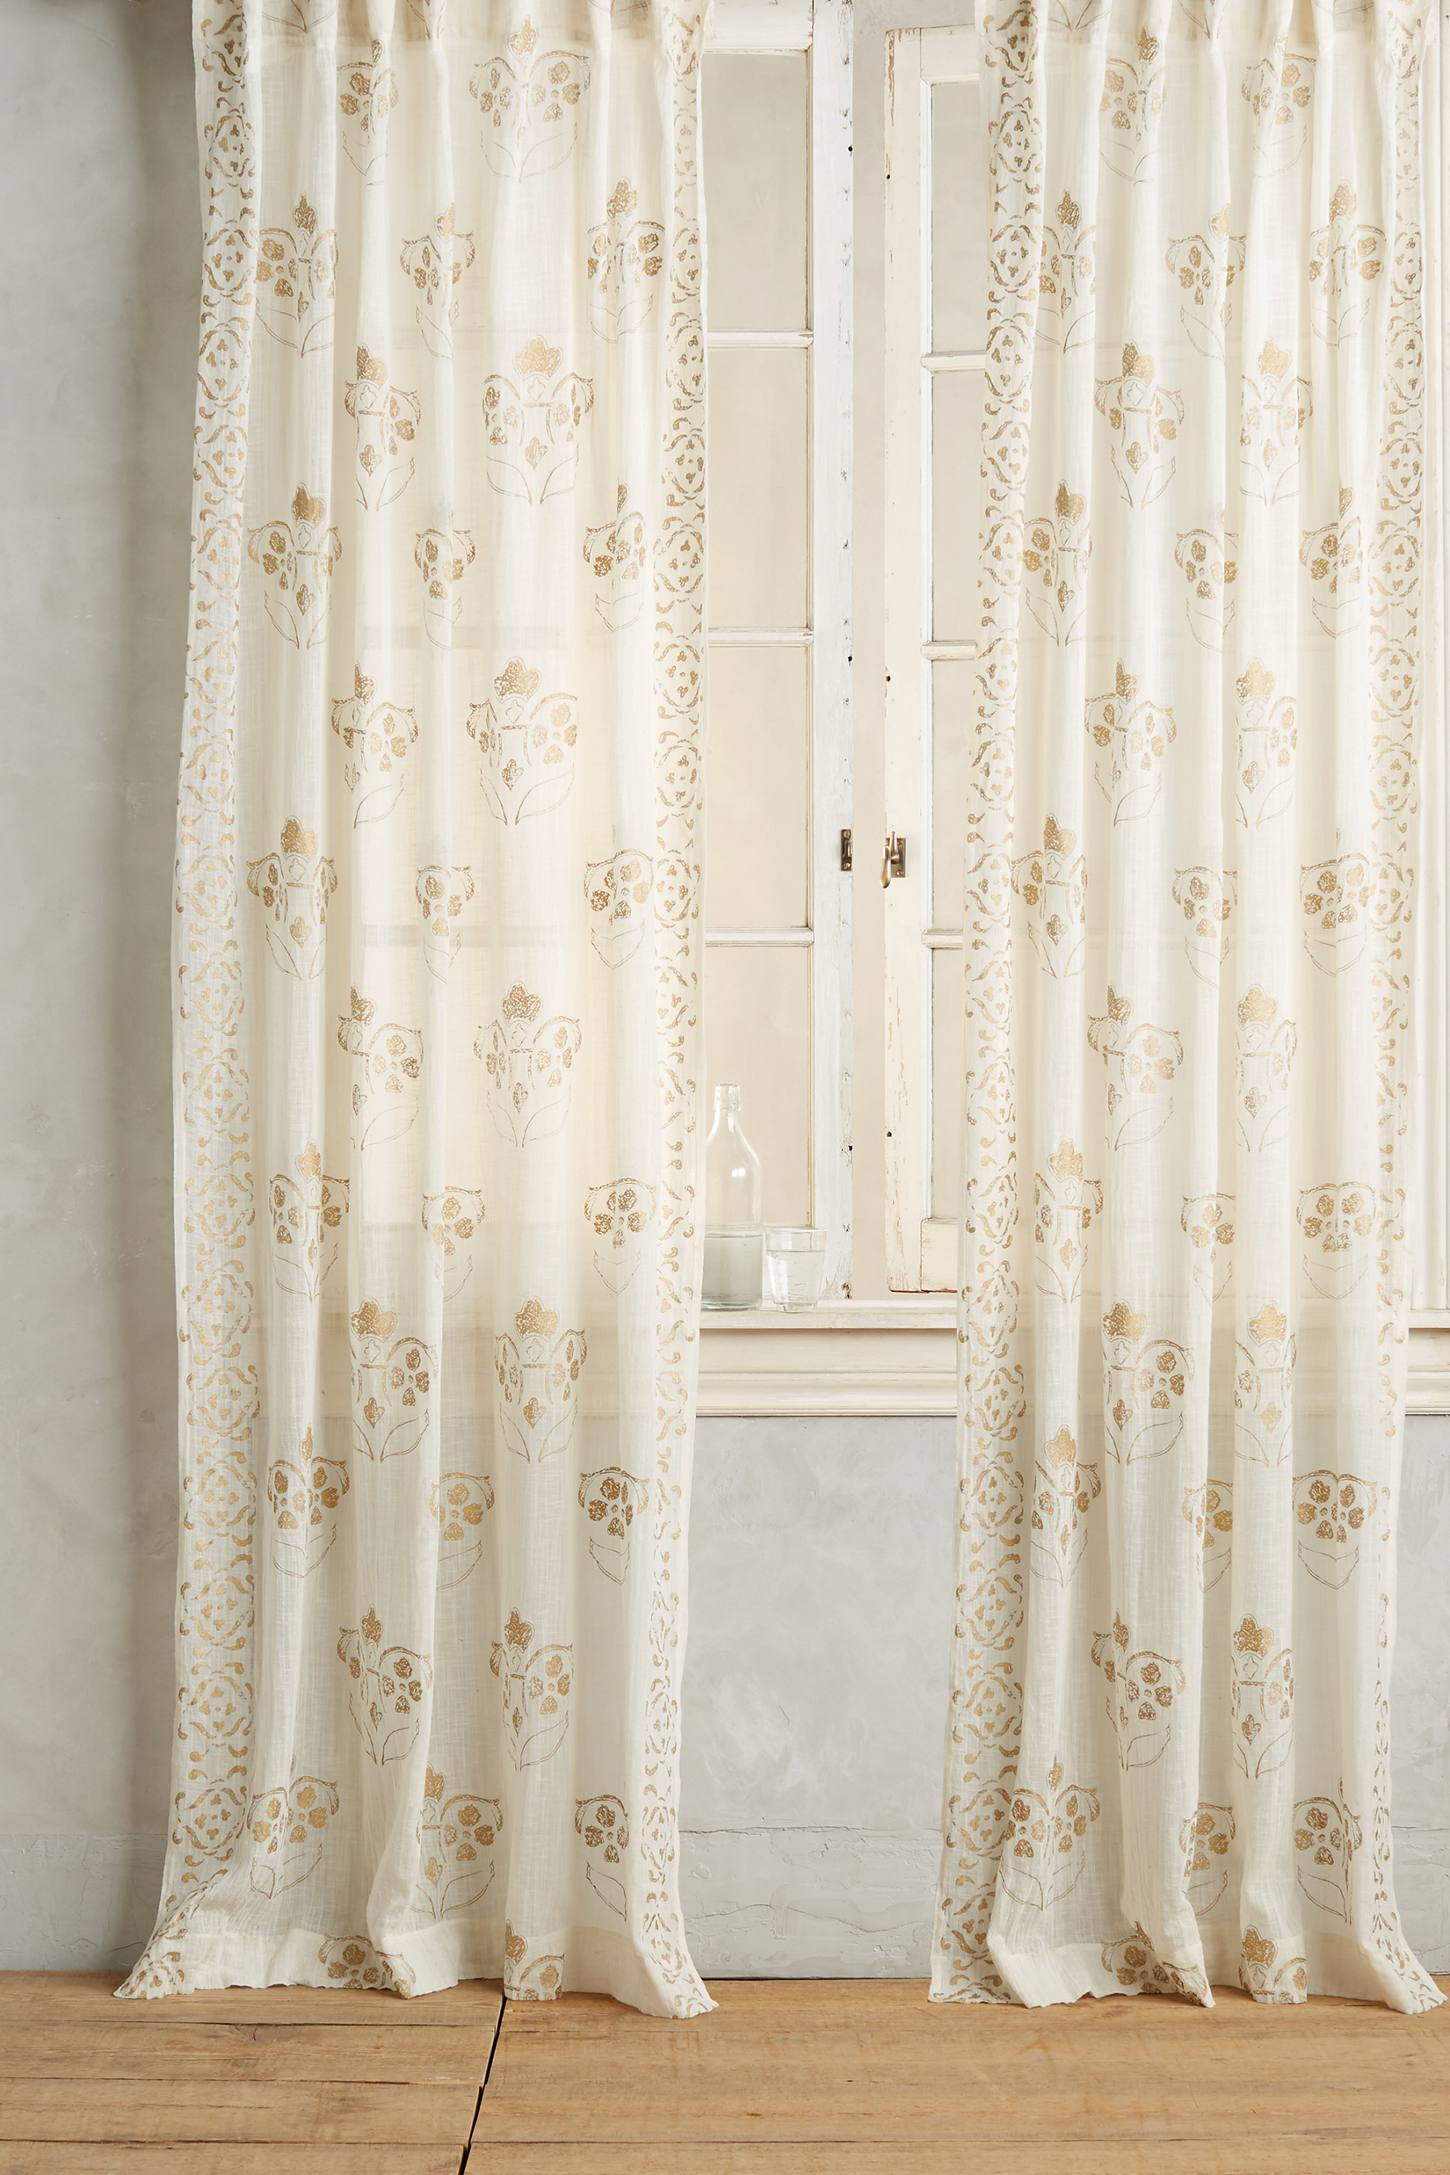 Slide View: 2: Gleaming Elora Curtain